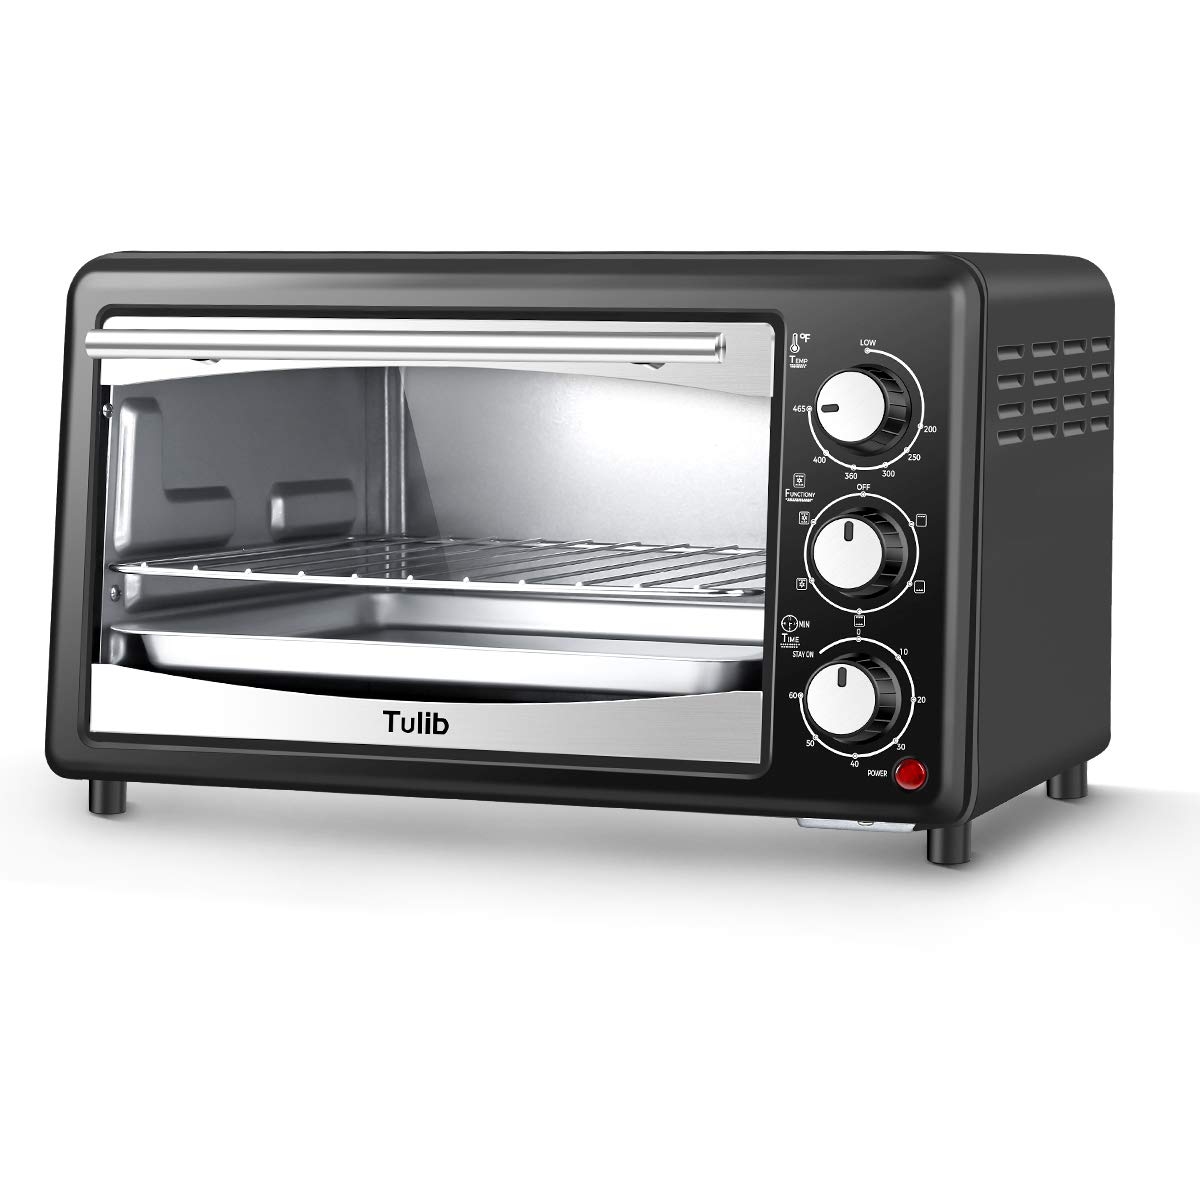 Tulib Convection Countertop Toaster Oven 1200W, Includes Bake Pan, Broil Rack, Stainless Steel